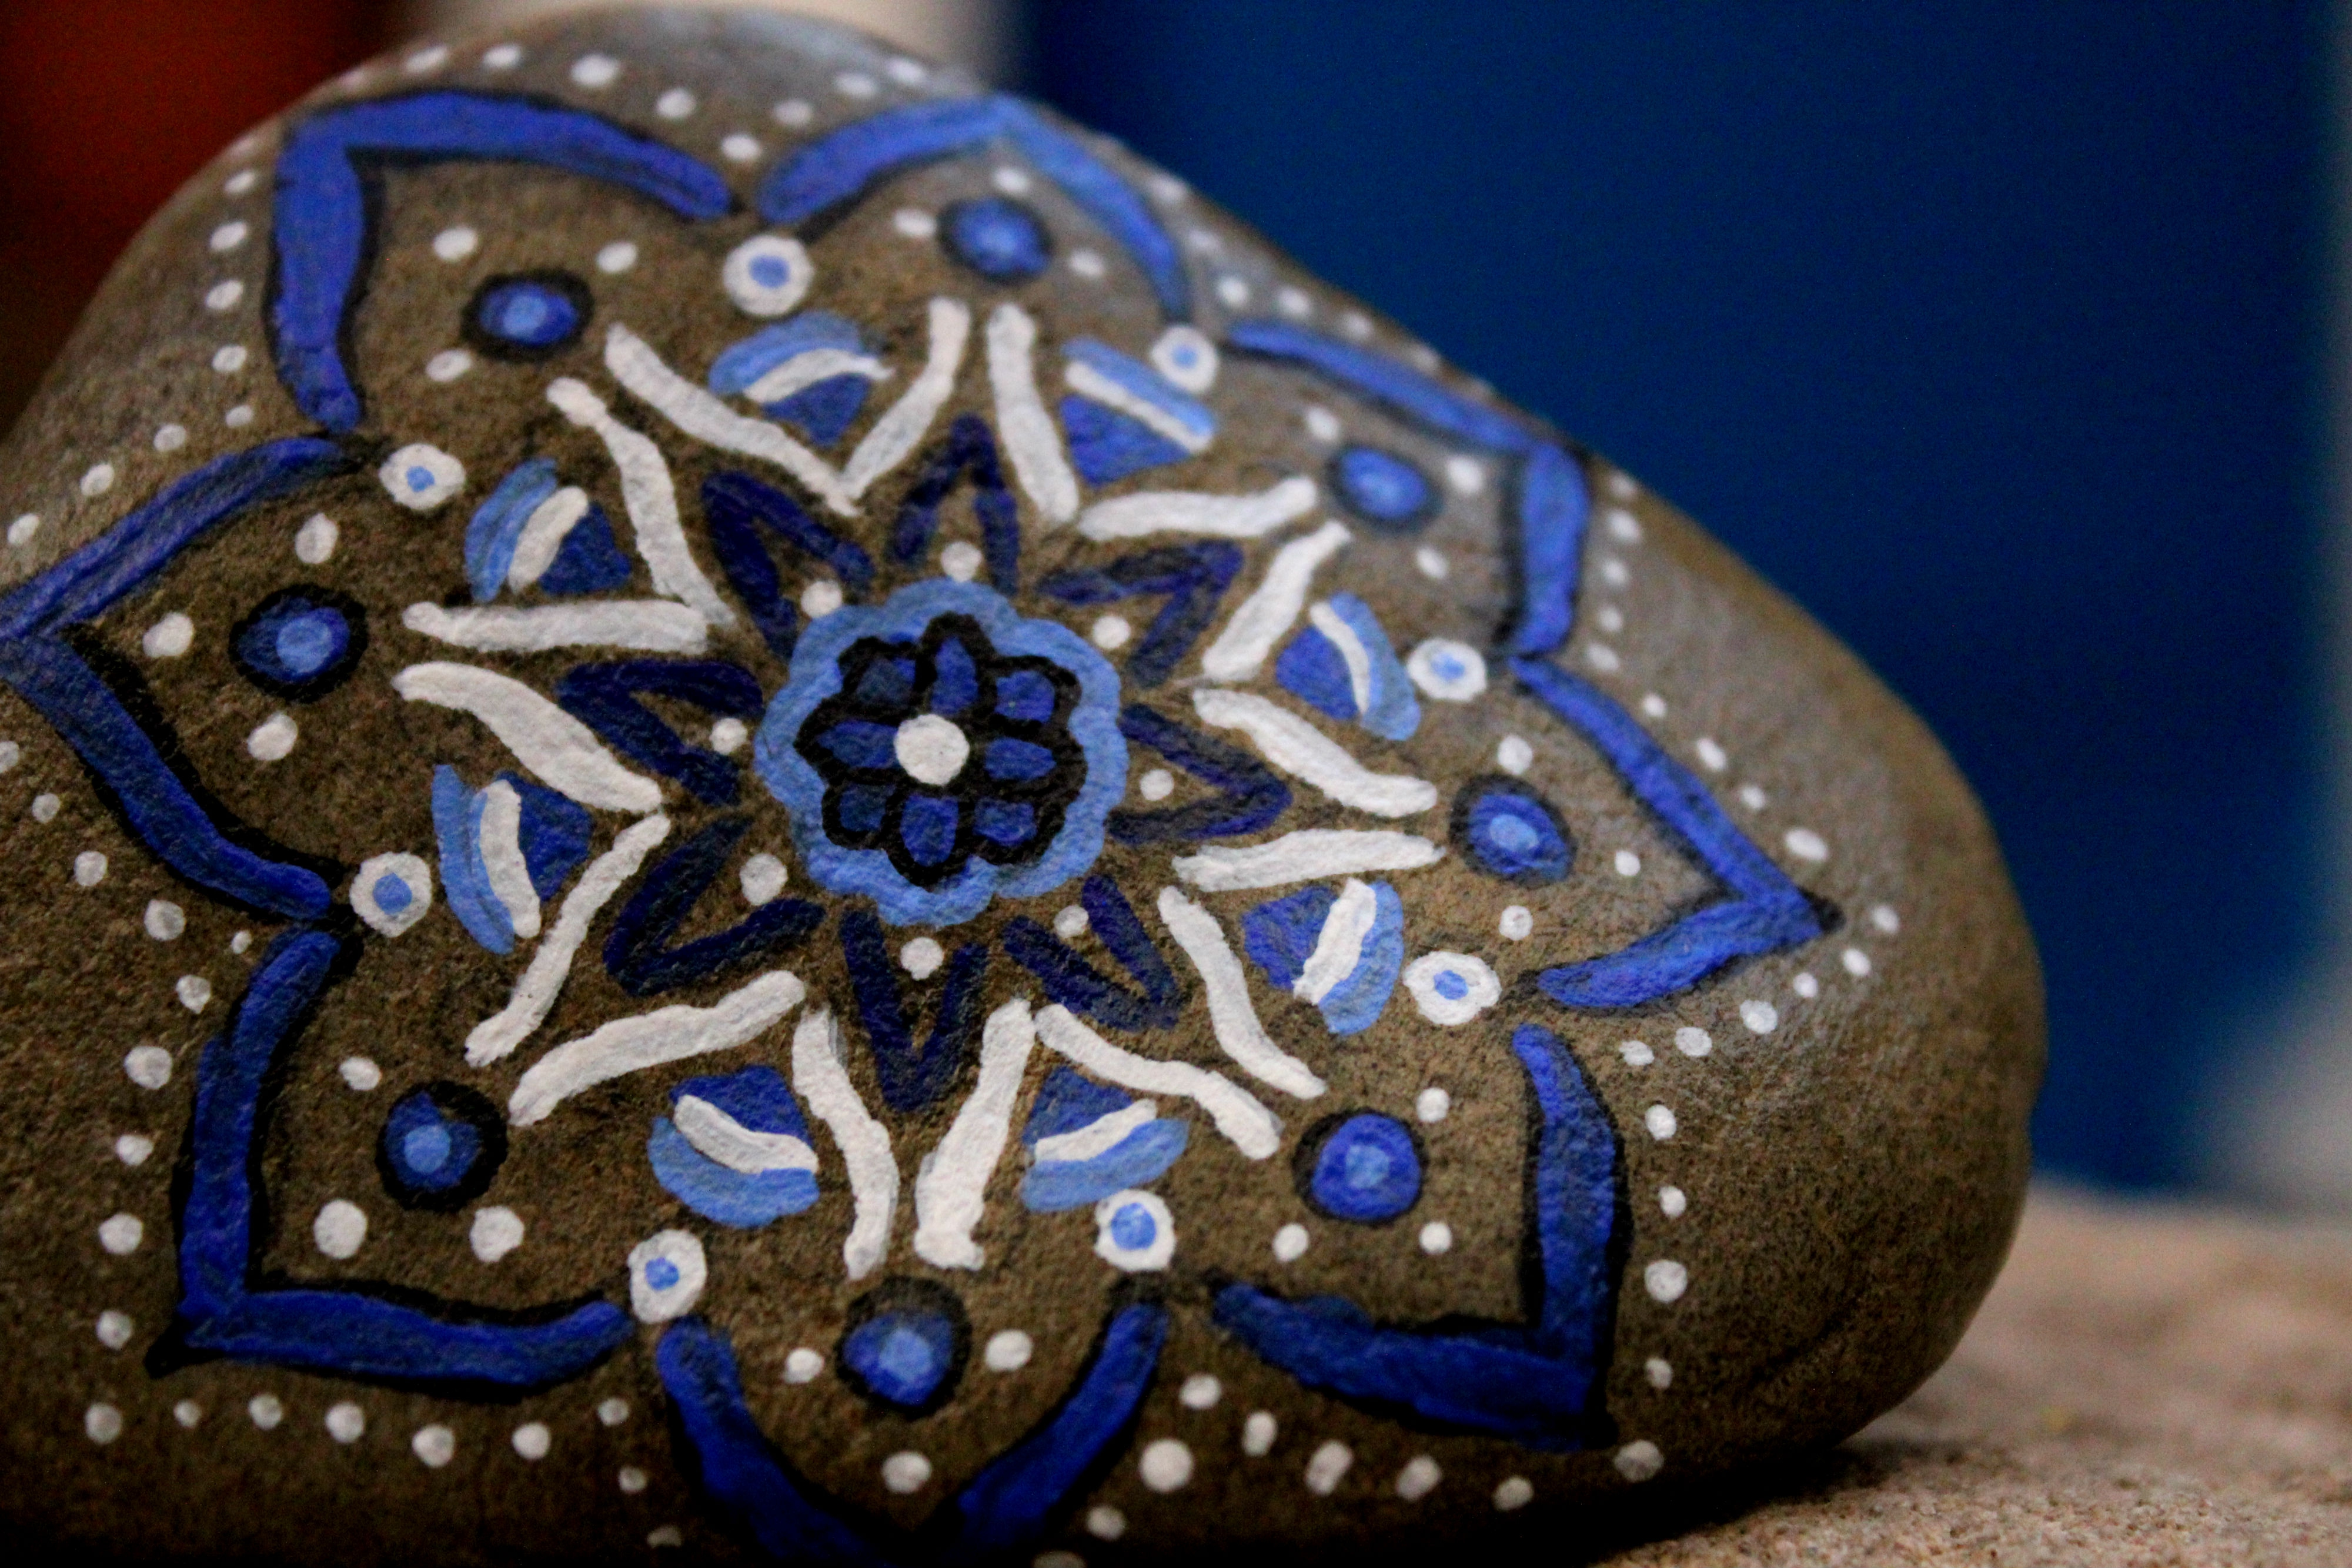 Costa Brava stone painted with acrylic brush in blue tones